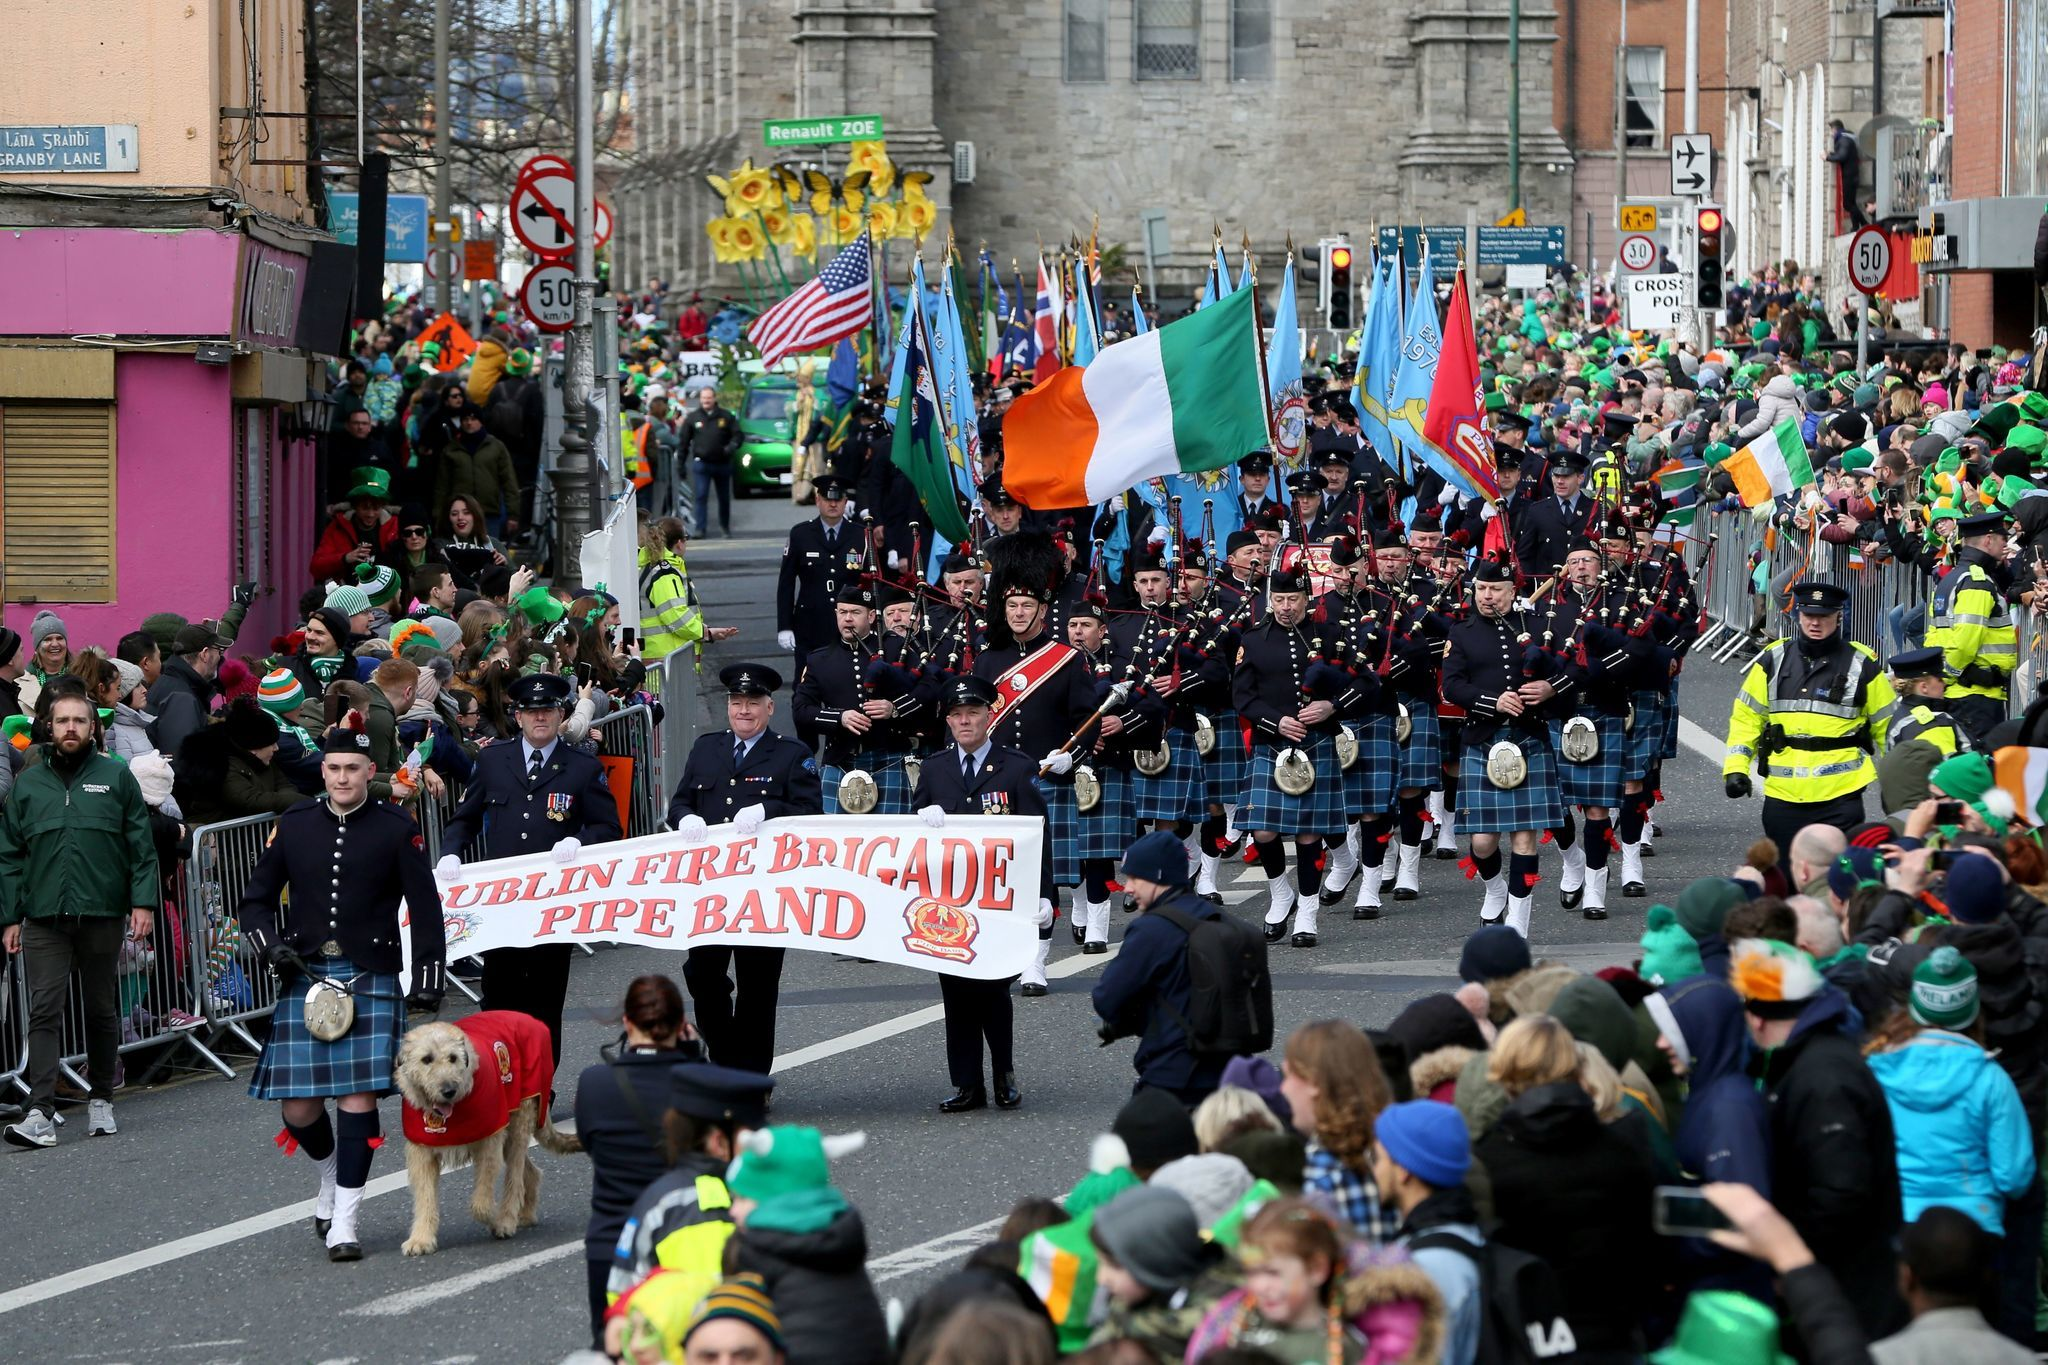 St. Patrick's Day parade canceled in Dublin